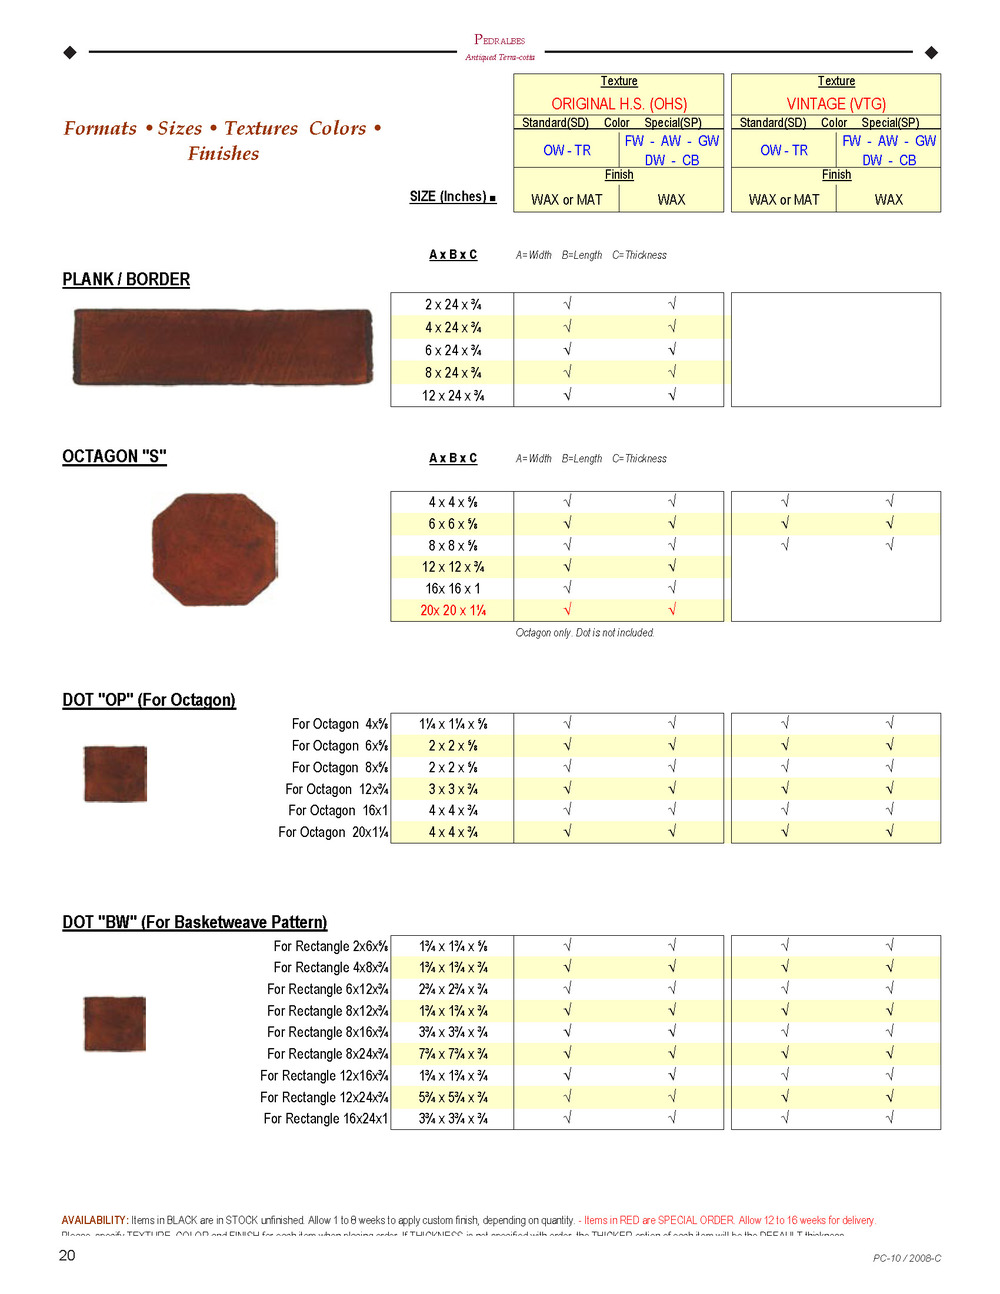 03-Formats+Sizes_Page_04.jpg